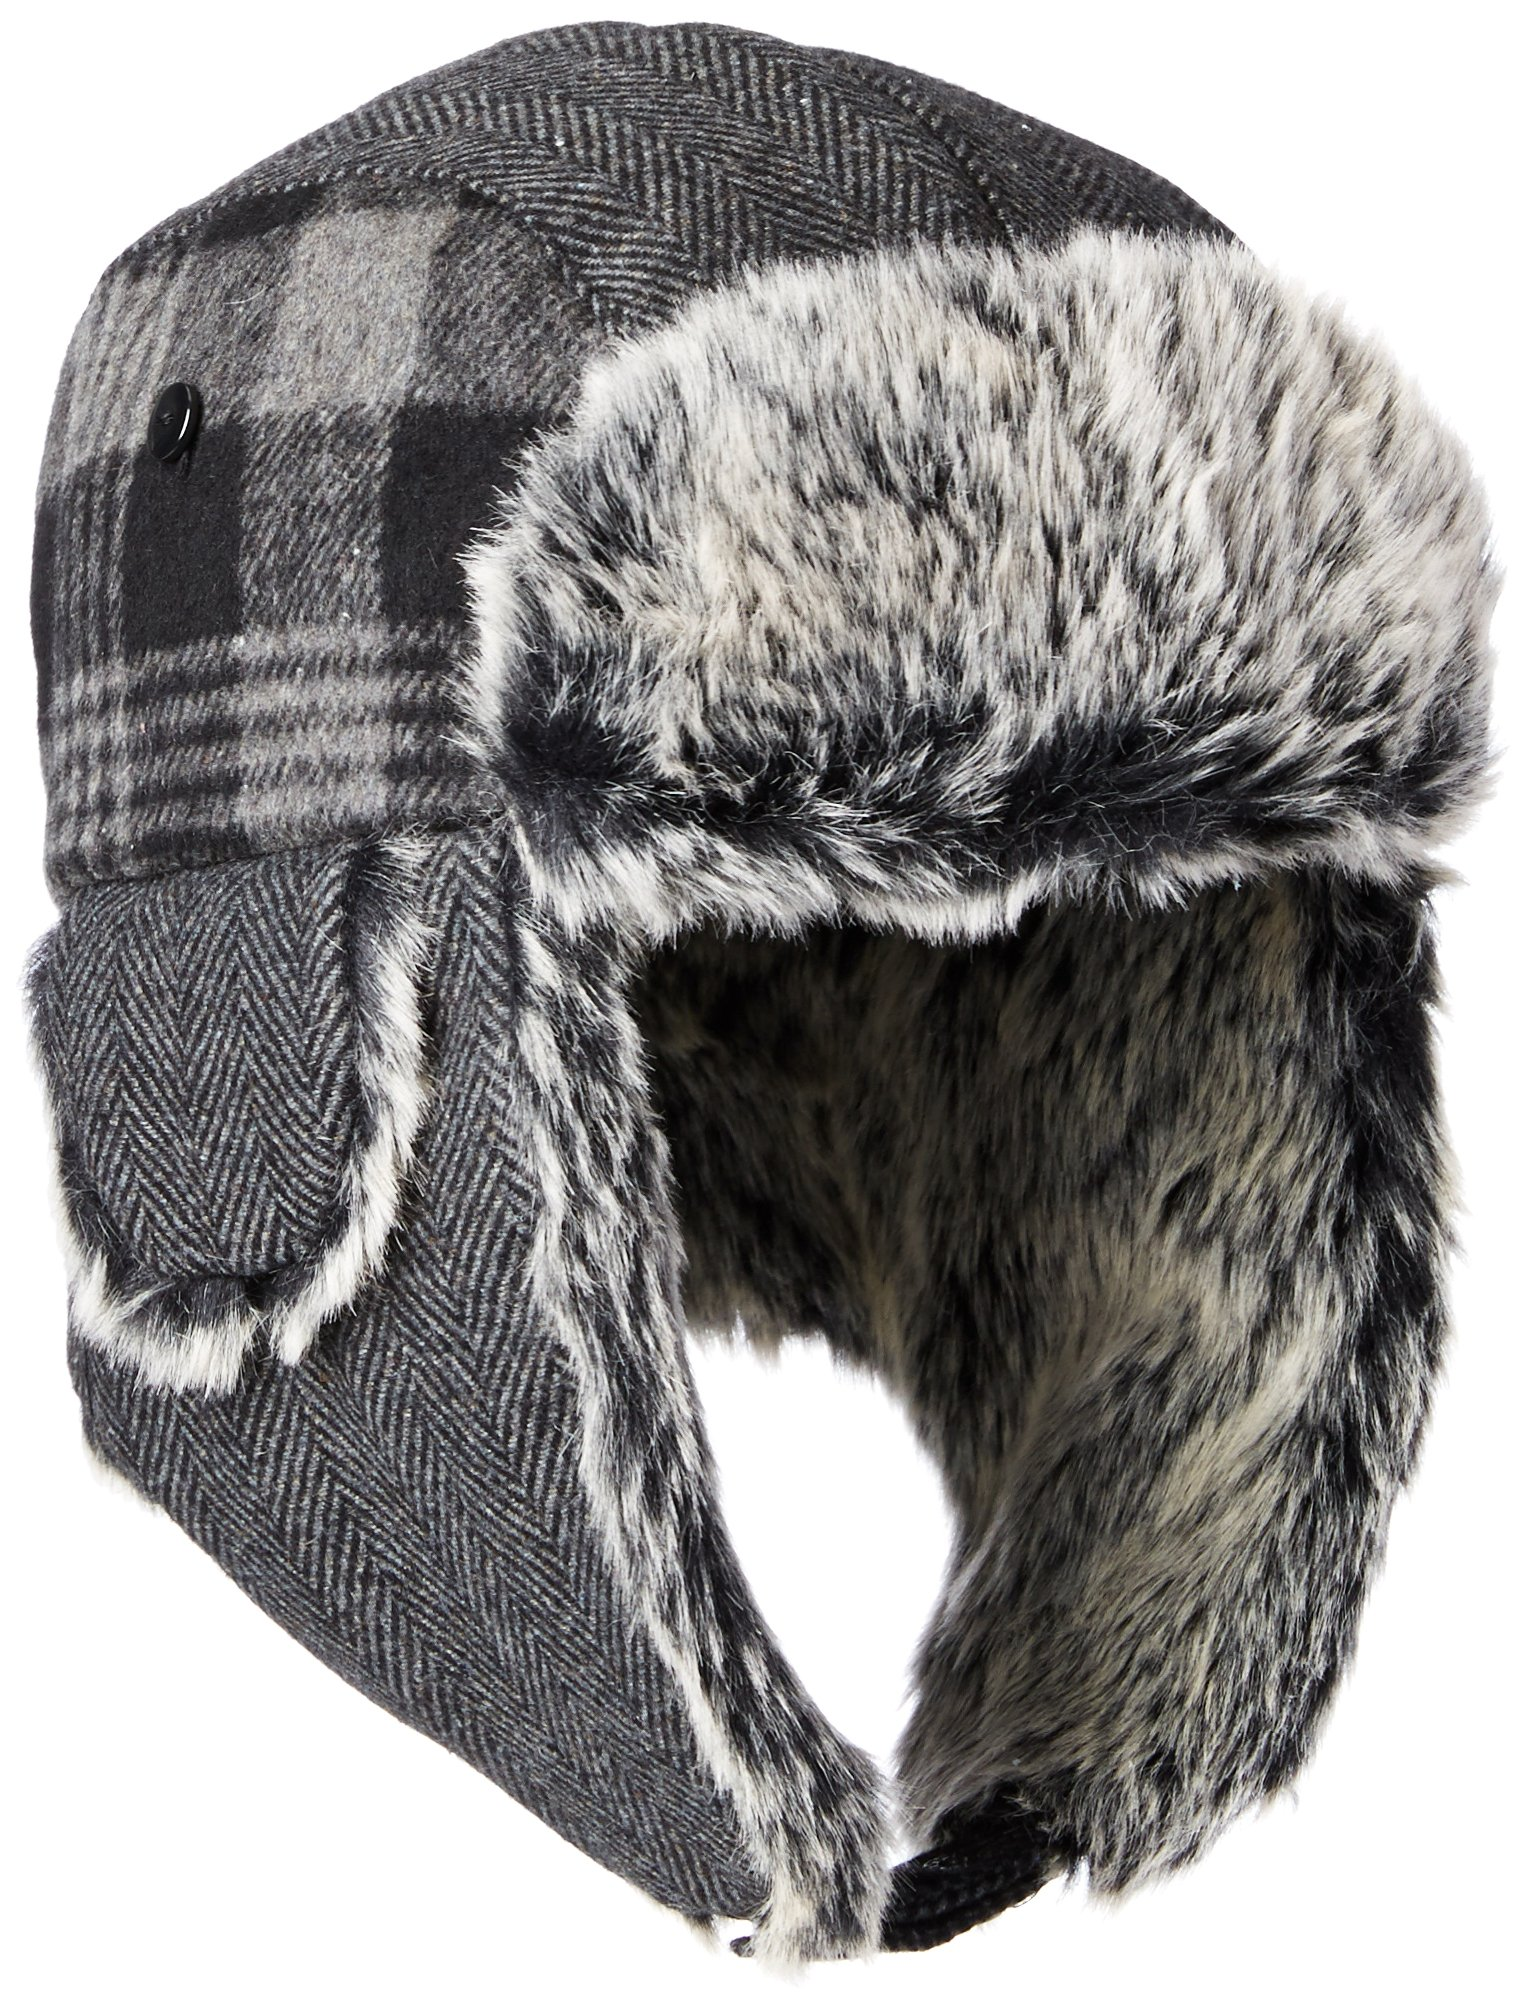 7ce65aa52884f6 Amazon.com: Dockers Men's Plaid and Herringbone Mixed Media Trapper Cap  with Faux Fur Lining, Charcoal, SMALL/MEDIUM: Clothing